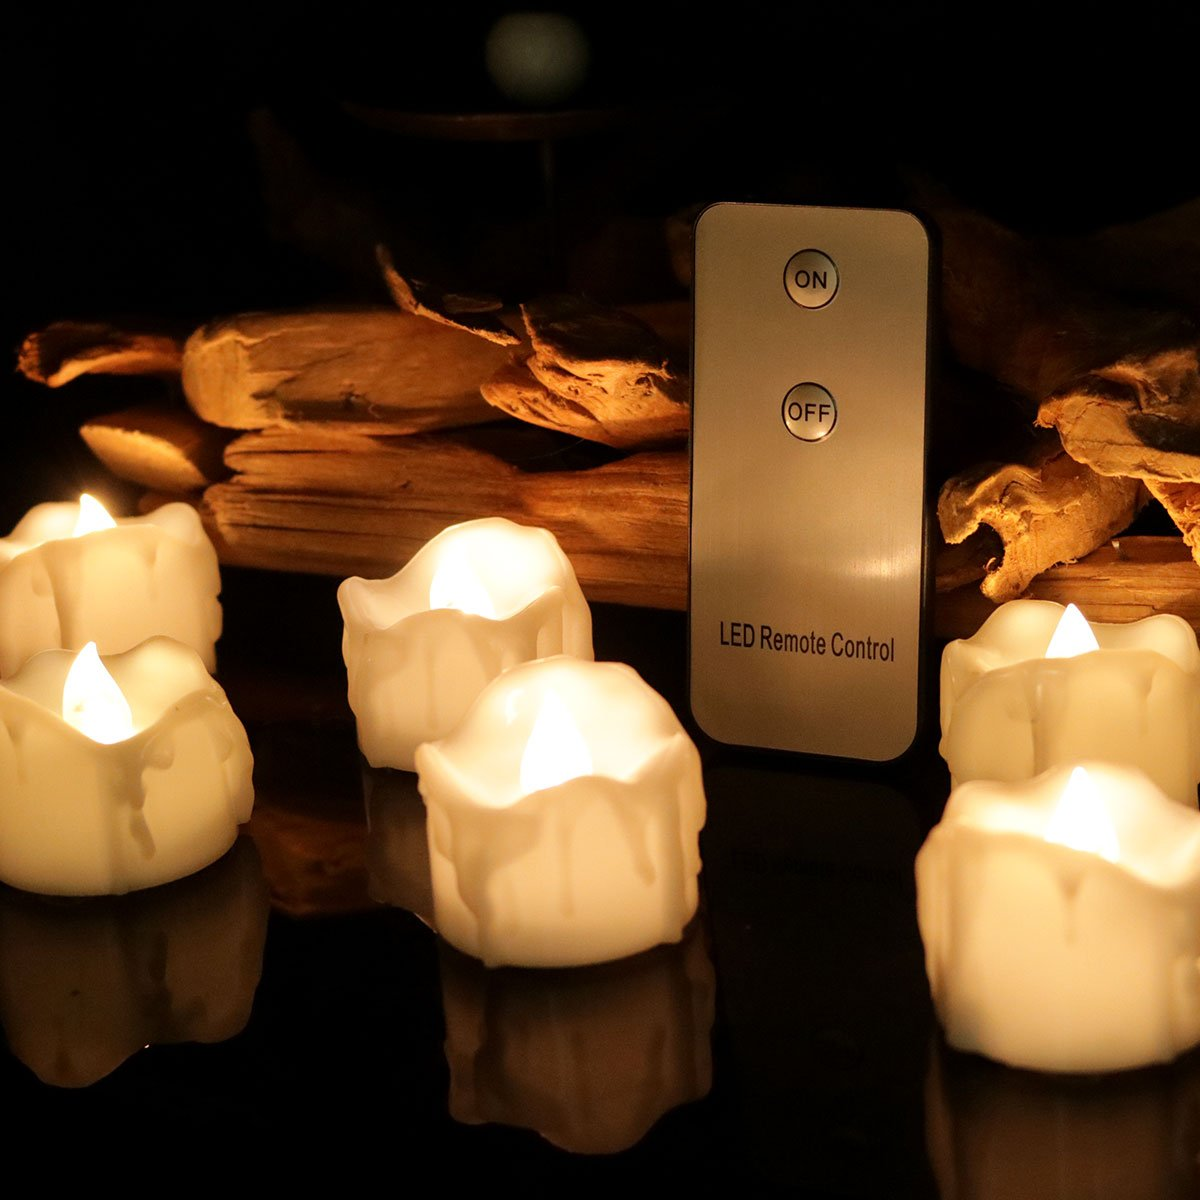 Frestree Remote LED Tea Lights Candles Battery Operated Romantic Candles Flameless Flickering Tealights Outdoor Party Wedding Home Décor Warm White 12pcs